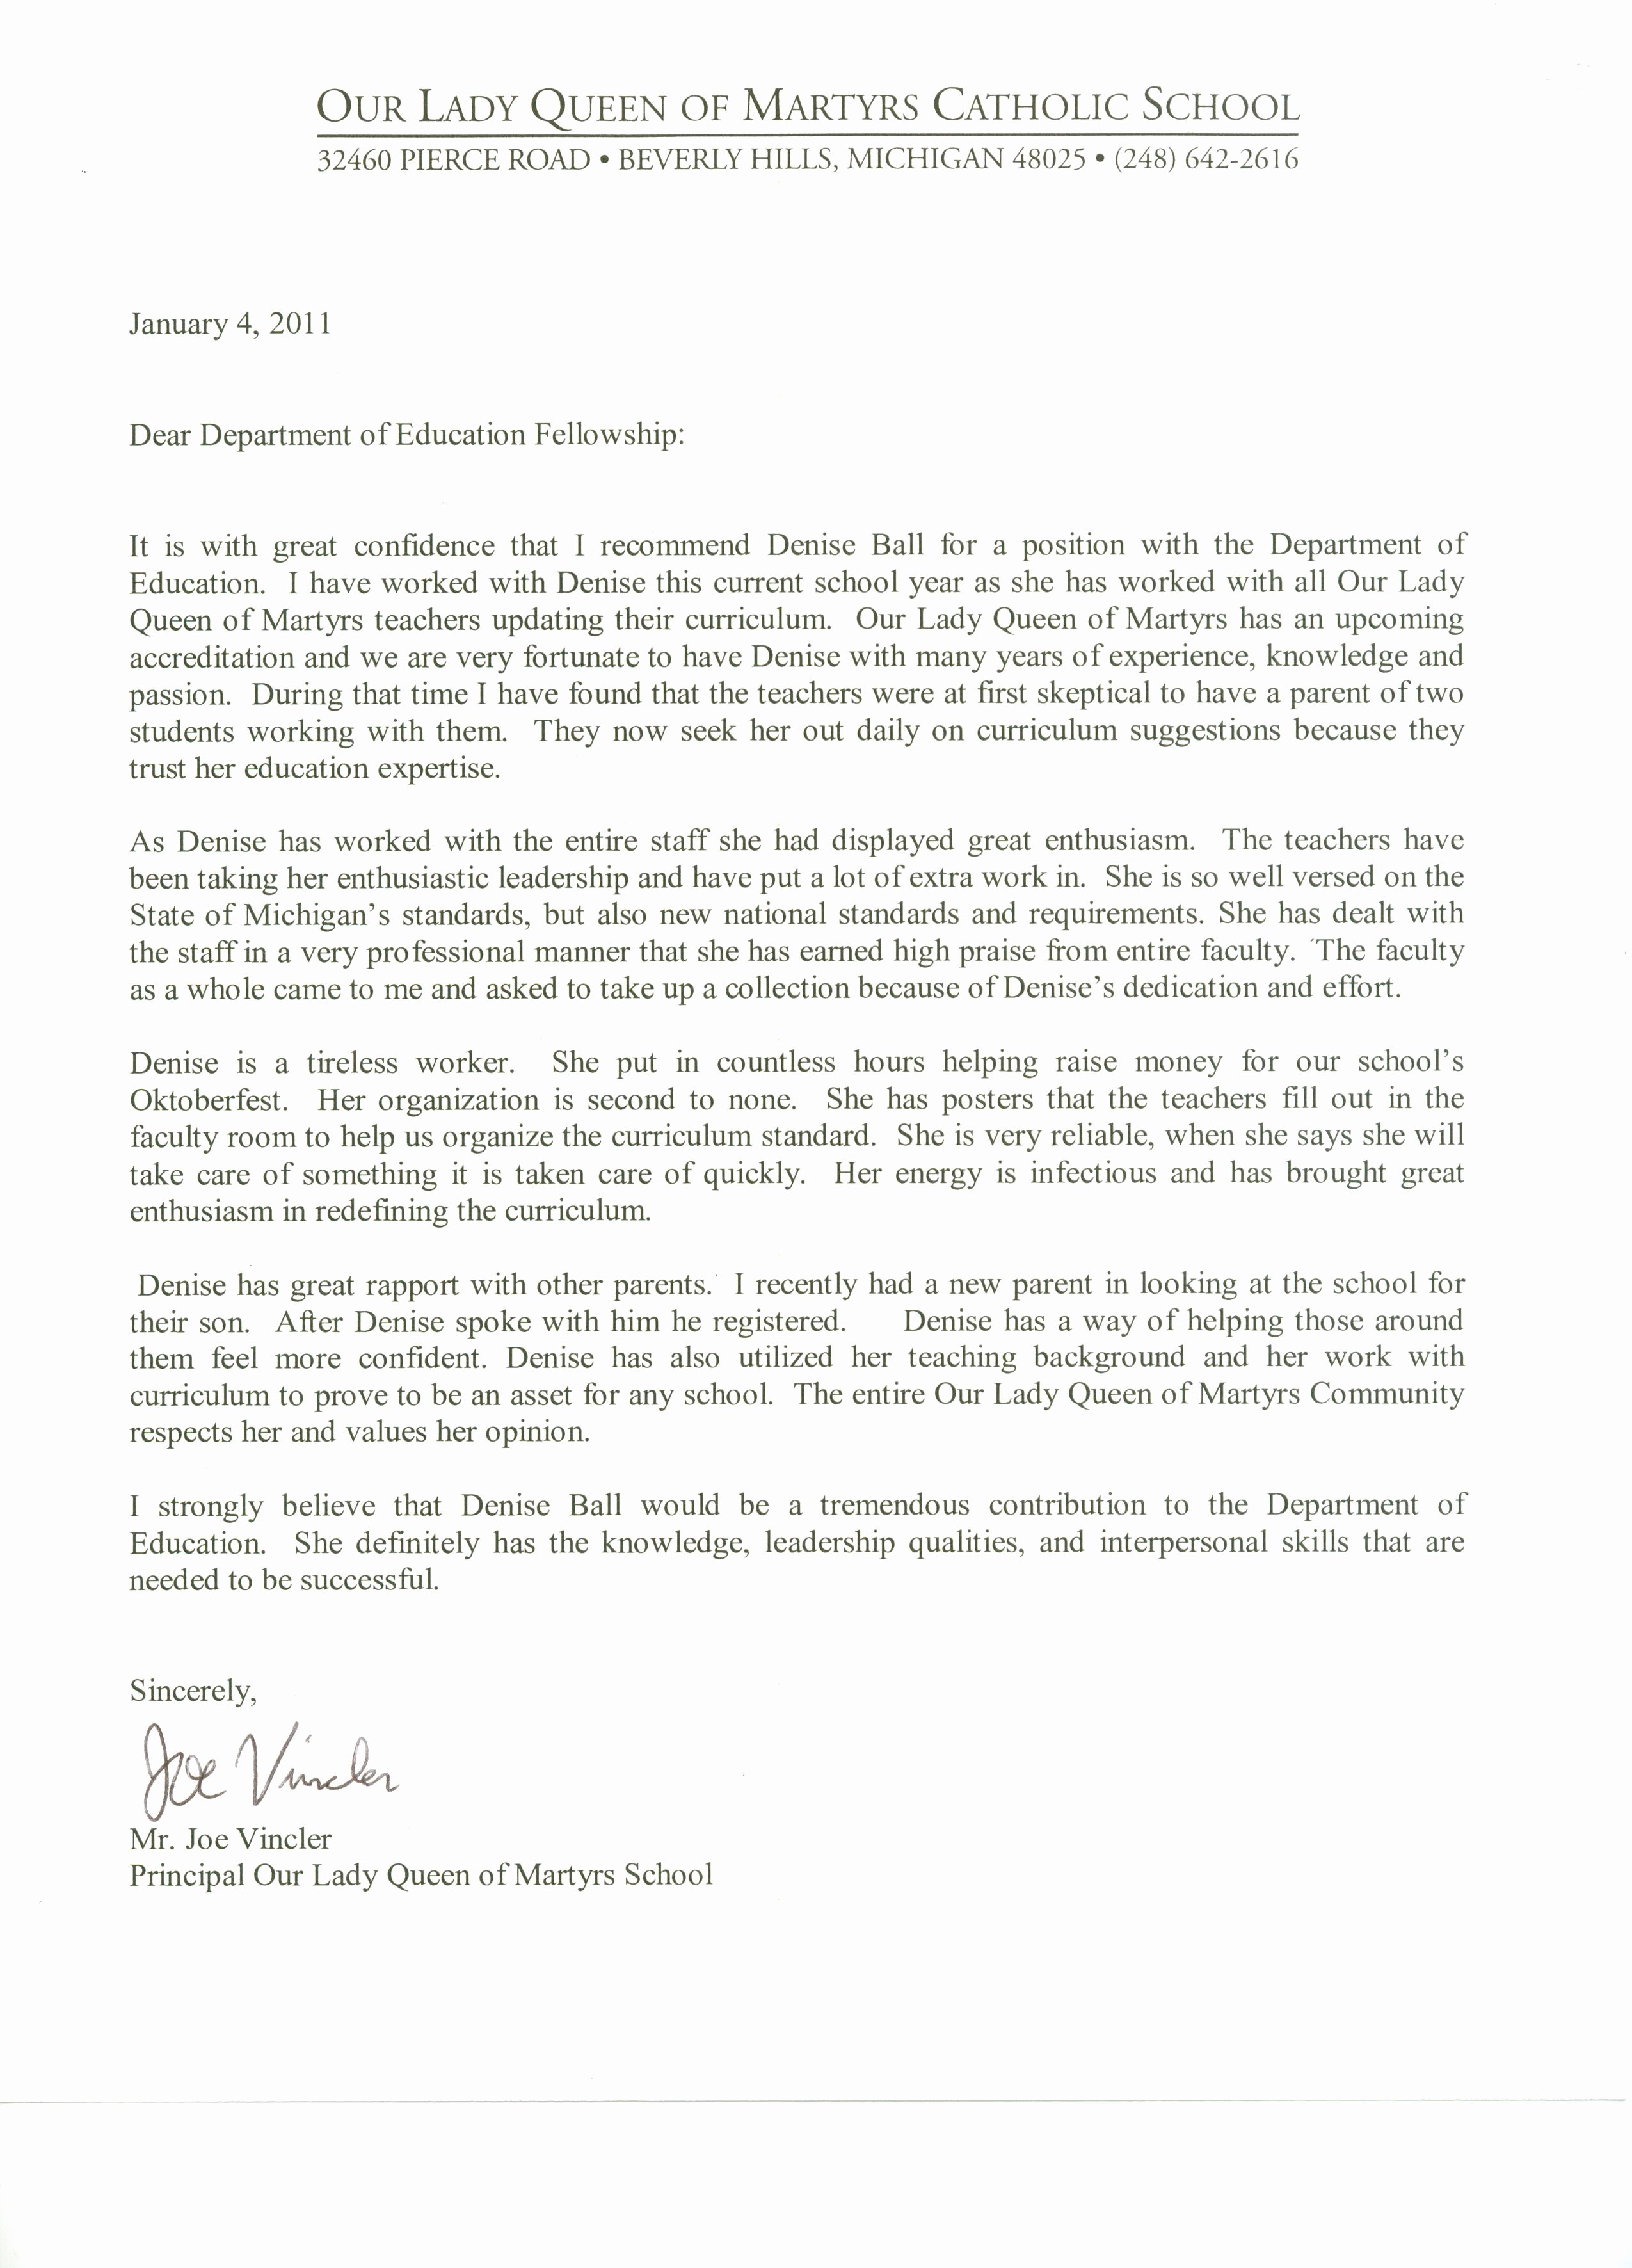 Letter Of Recommendation From Teacher Elegant Letter Of Re Mendation for Denise Ball